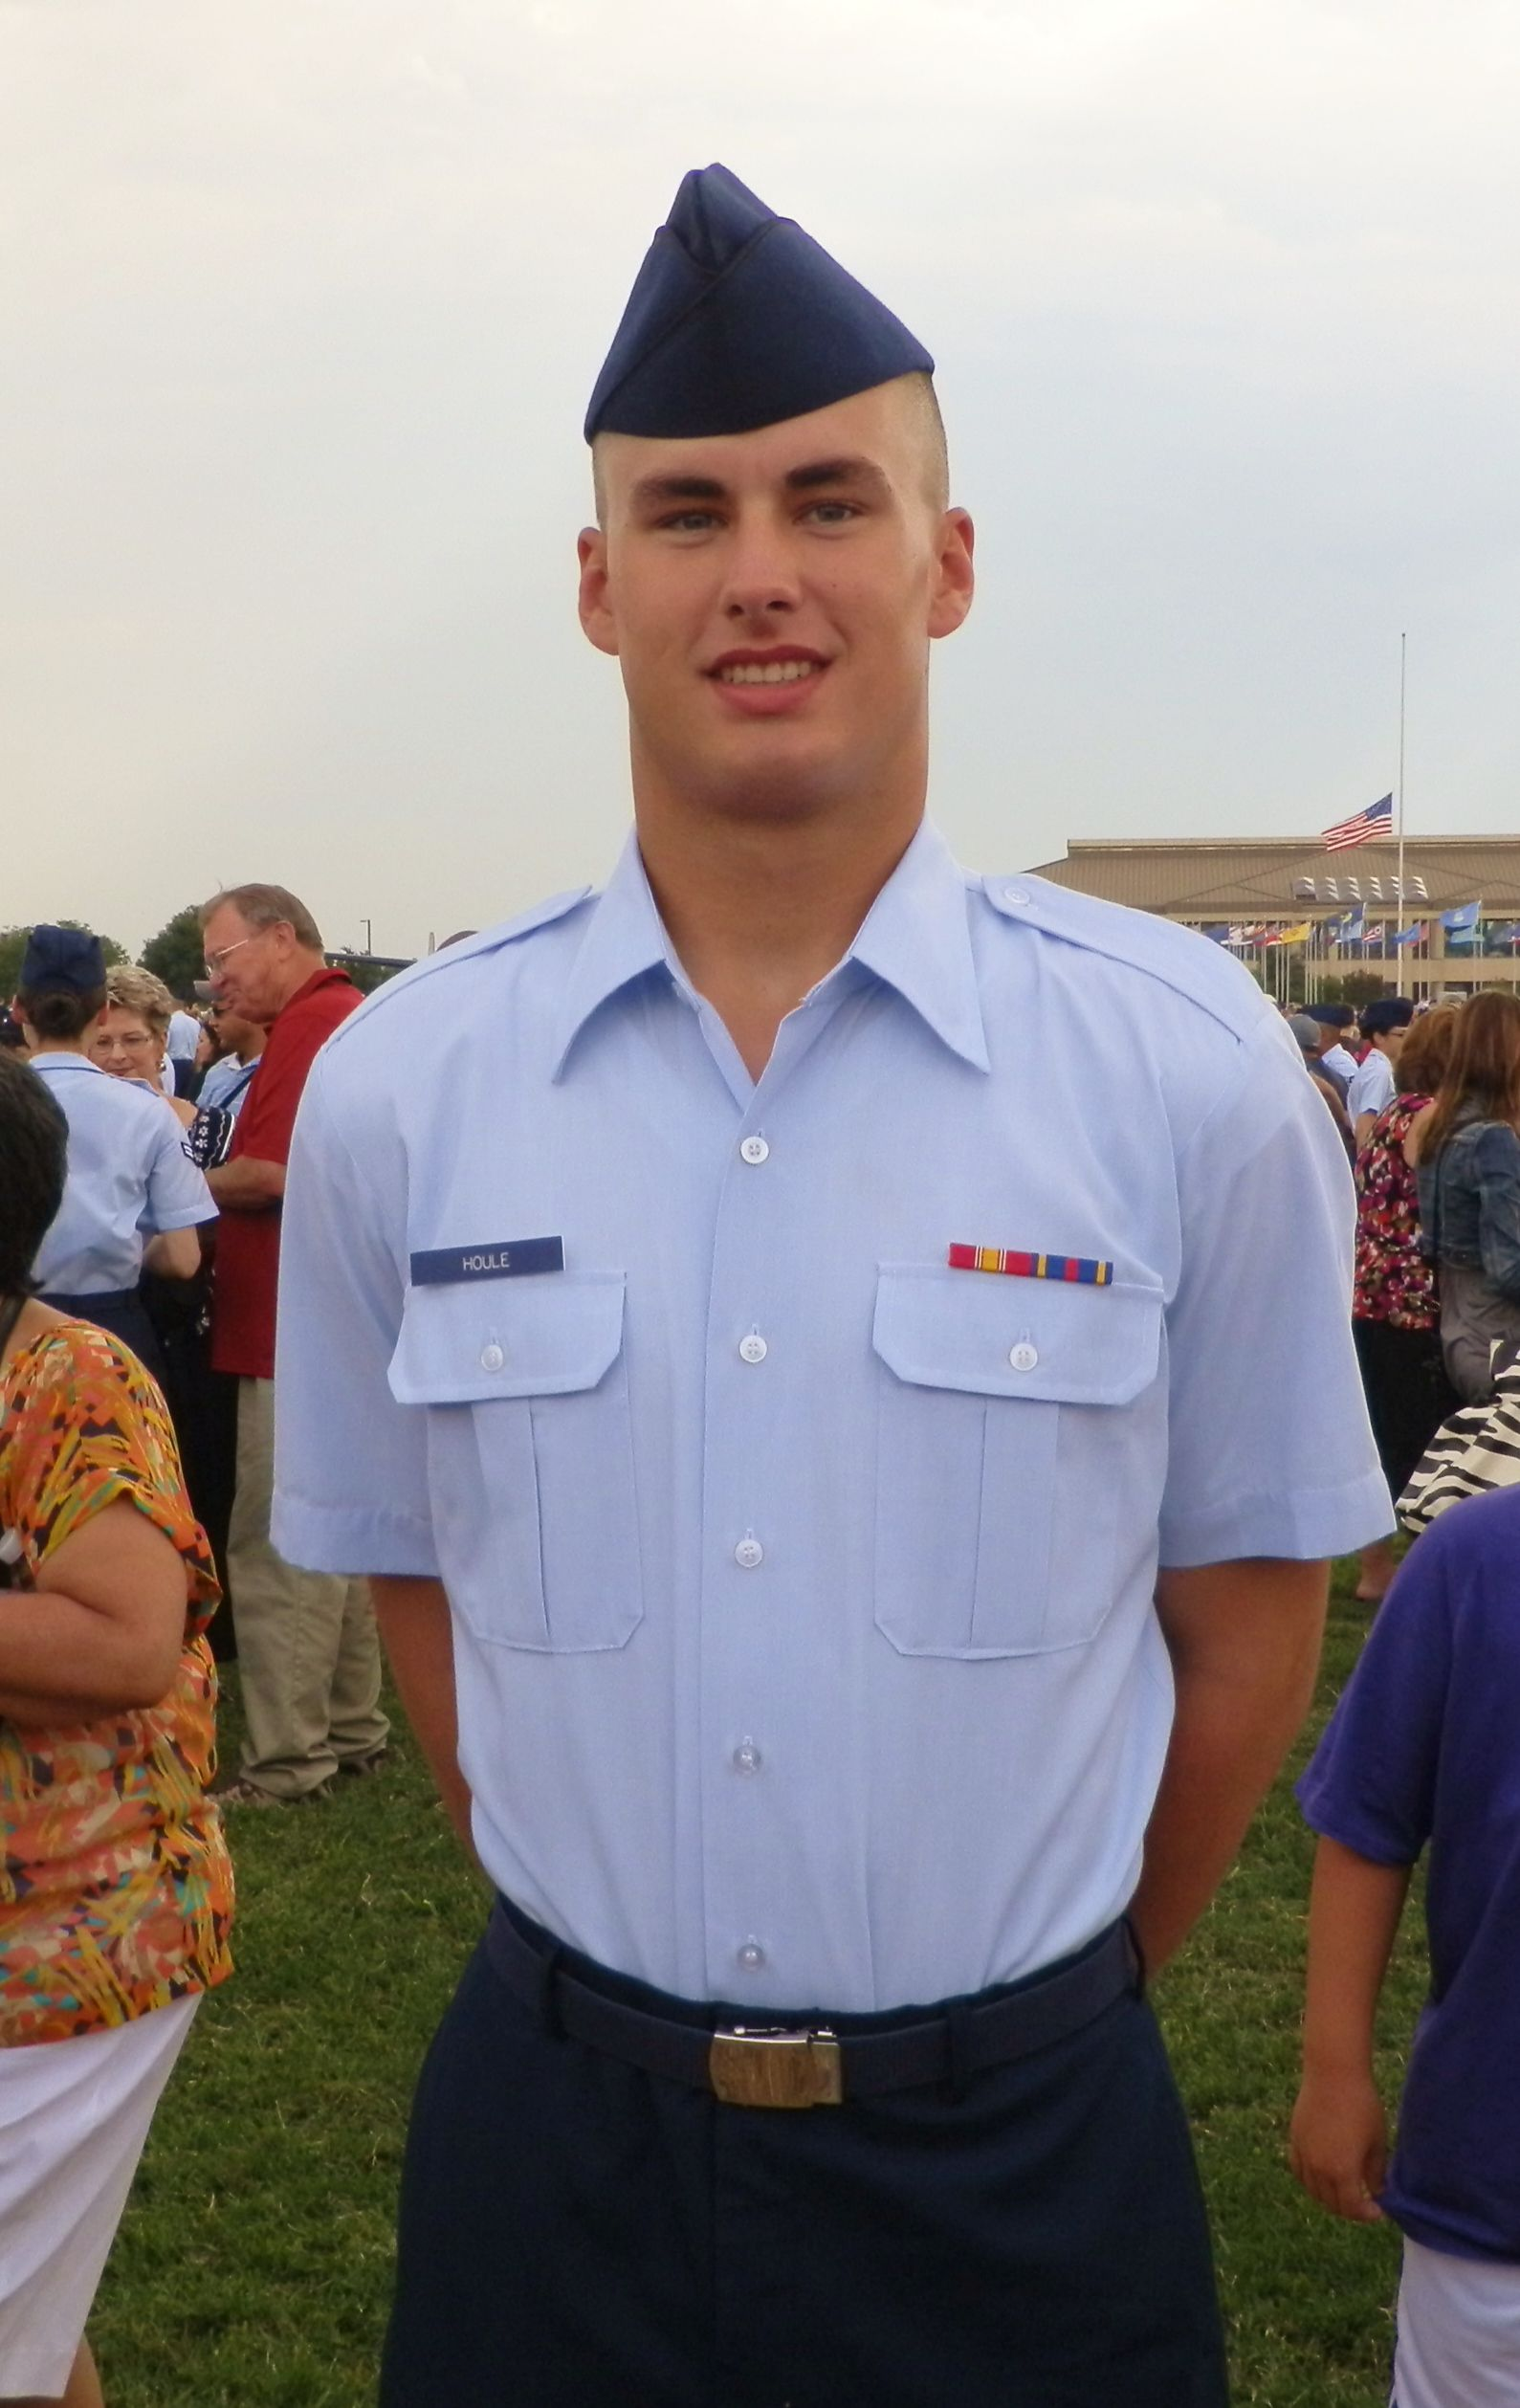 Air Force Graduation Day after 2 months of Boot Camp at Lackland Air Force  Base in San Antonio, TX - 2012. My son Dylan, now an Airman.